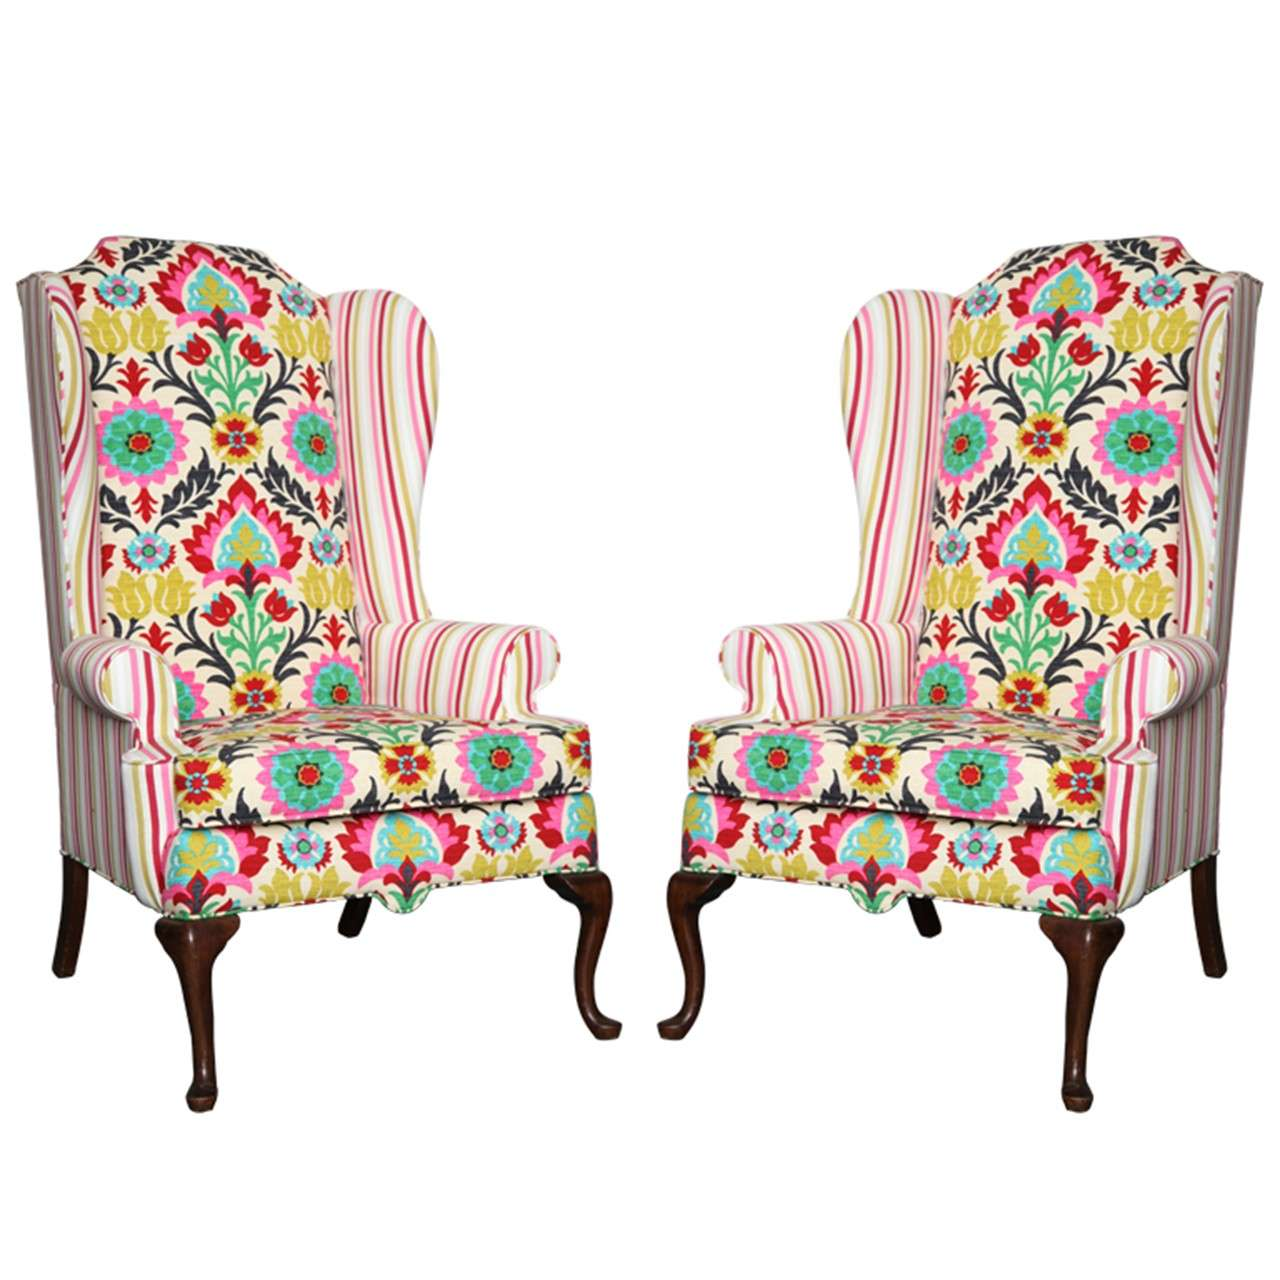 Antique wingback chairs - Pair Of American Drexel Queen Anne Wingback Chairs C 1960 1